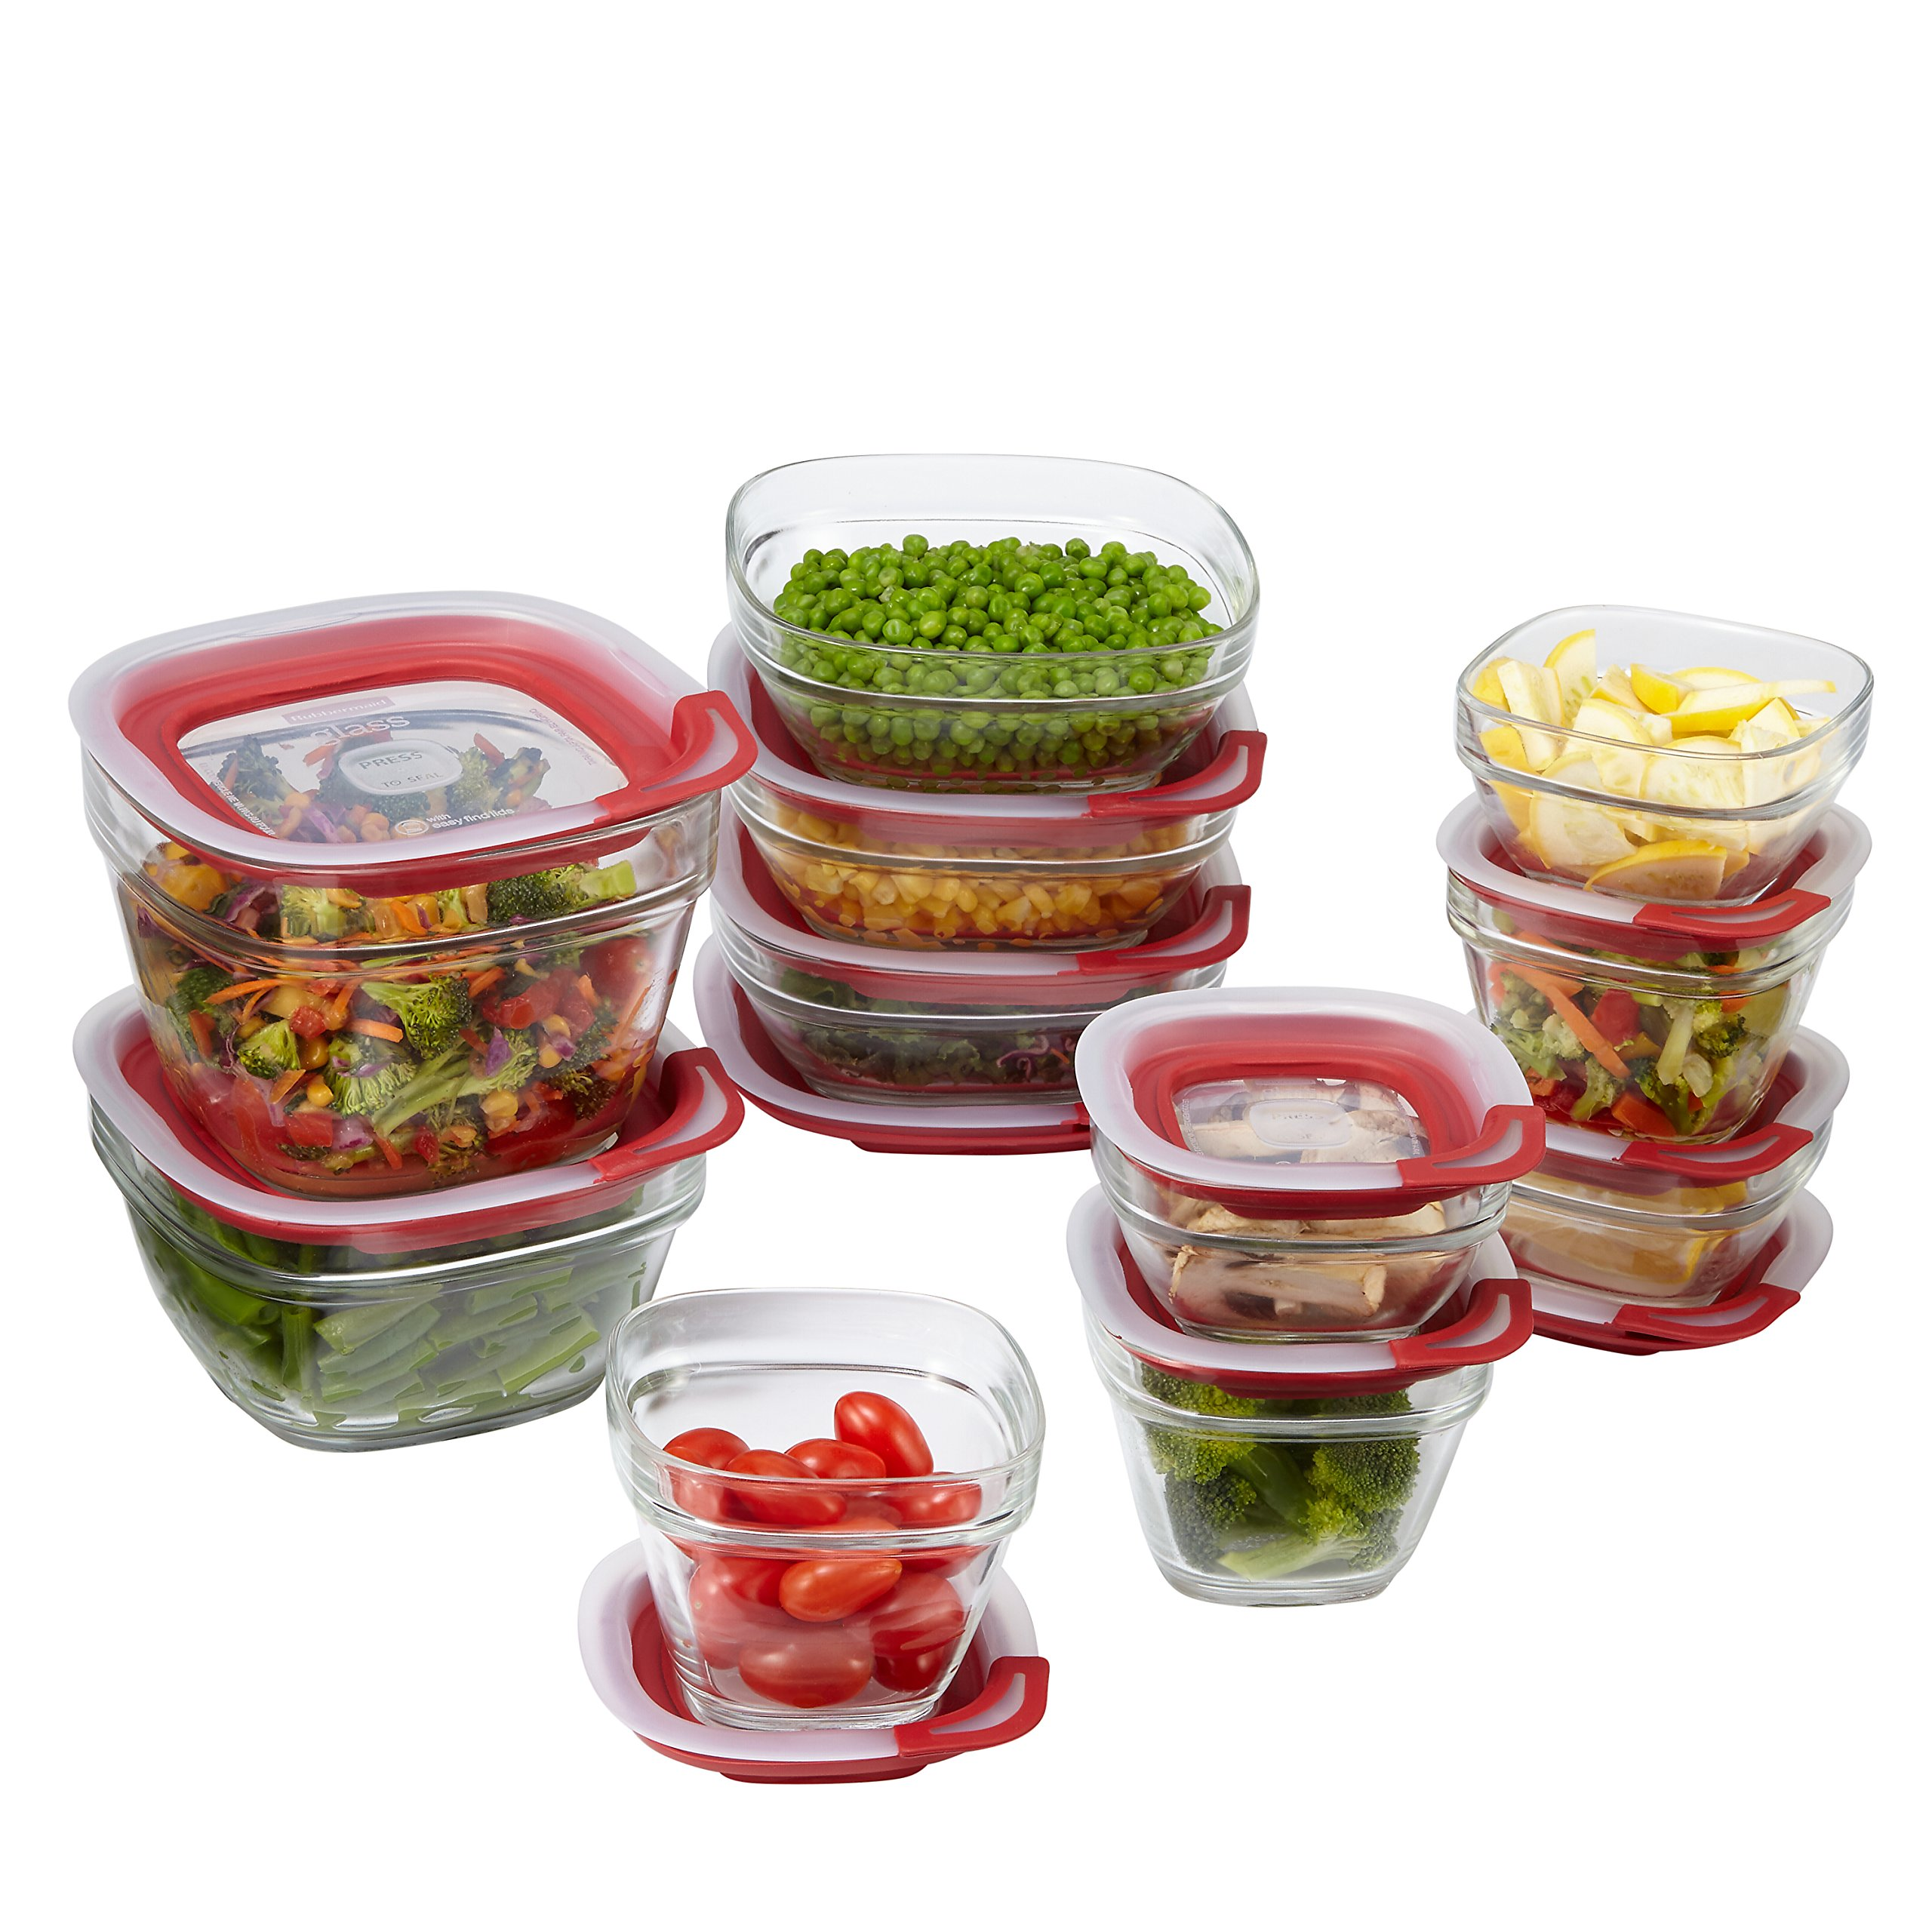 Rubbermaid Easy Find Lids Glass Food Storage Containers, Racer Red, 22-Piece Set 1865887 by Rubbermaid